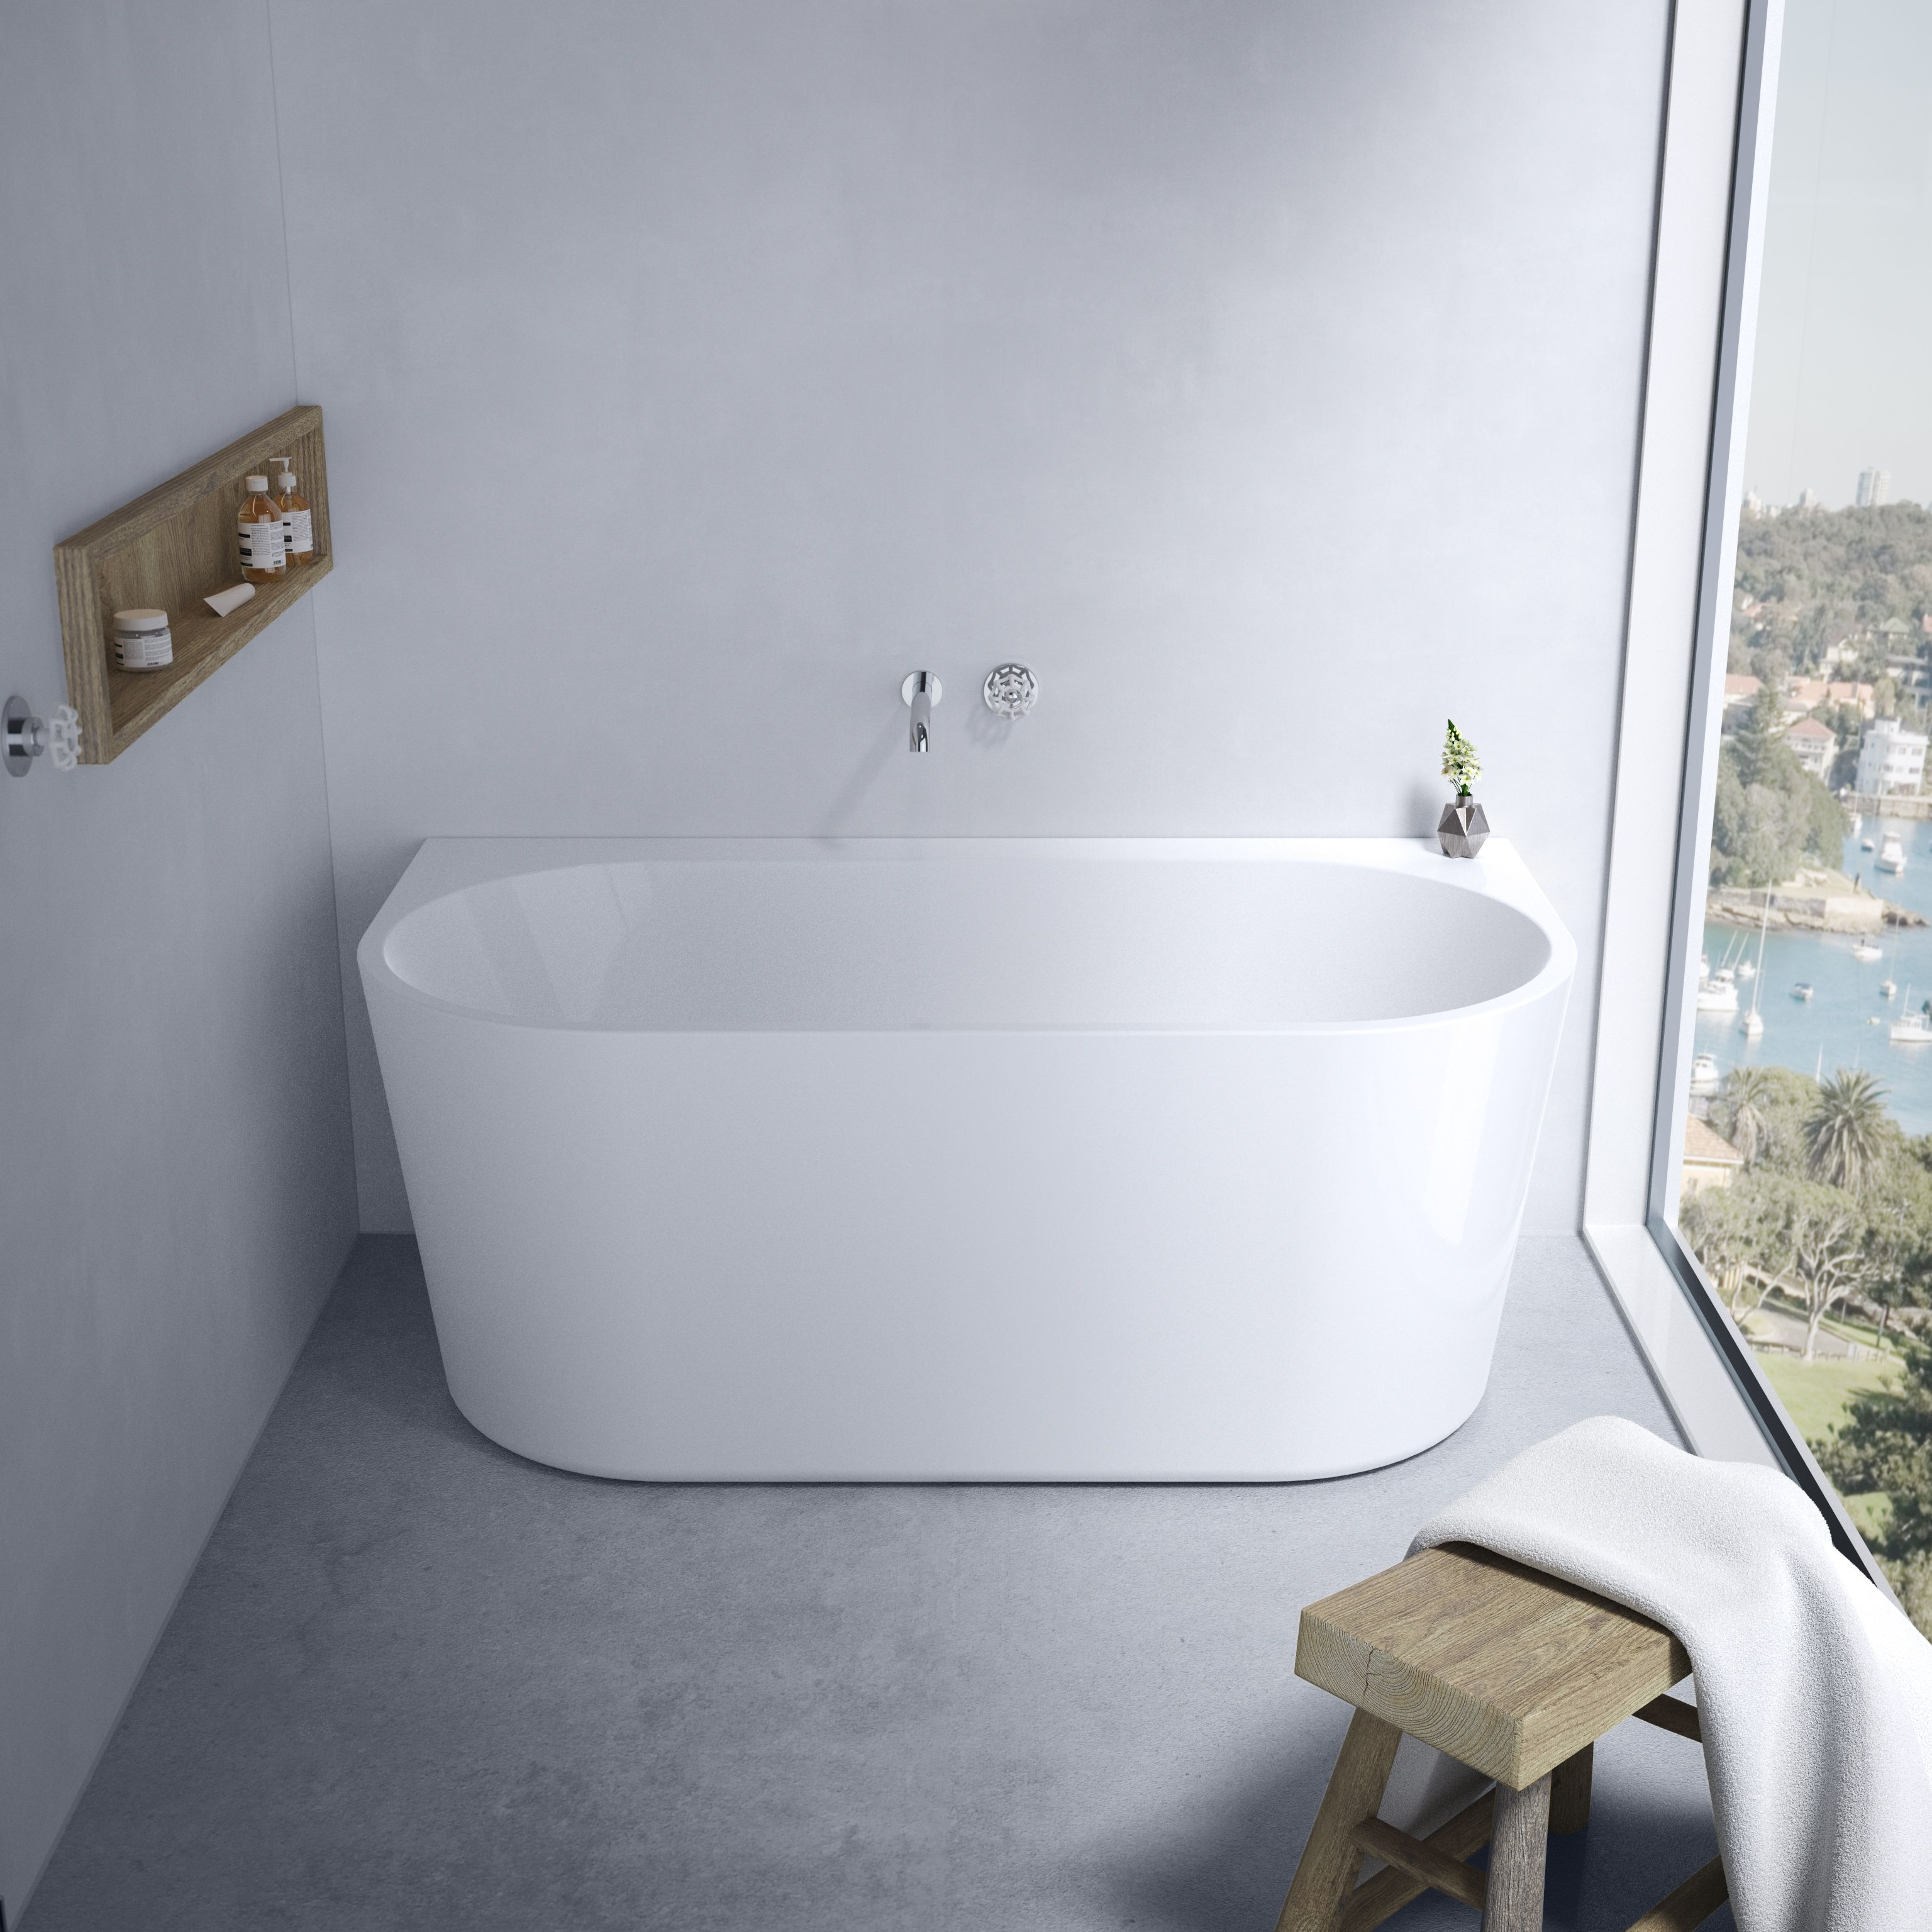 Caroma\'s Aura back-to-wall bath combines innovative design with ...